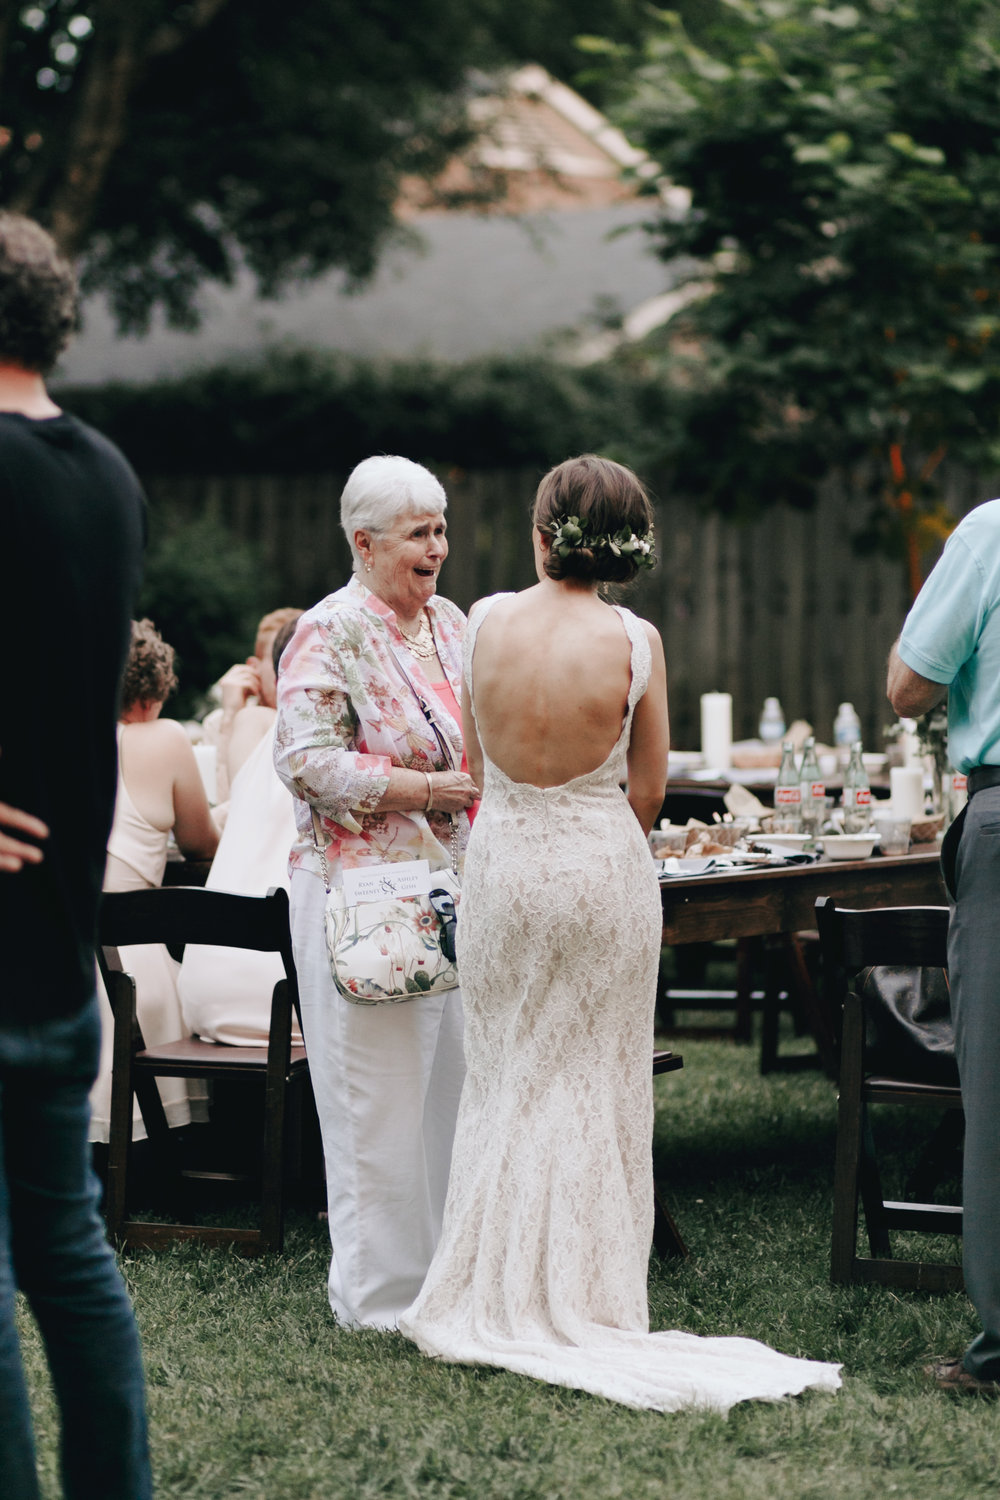 Photography Anthology - Backyard Indie Eclectic Wedding Nashville (67 of 85).jpg